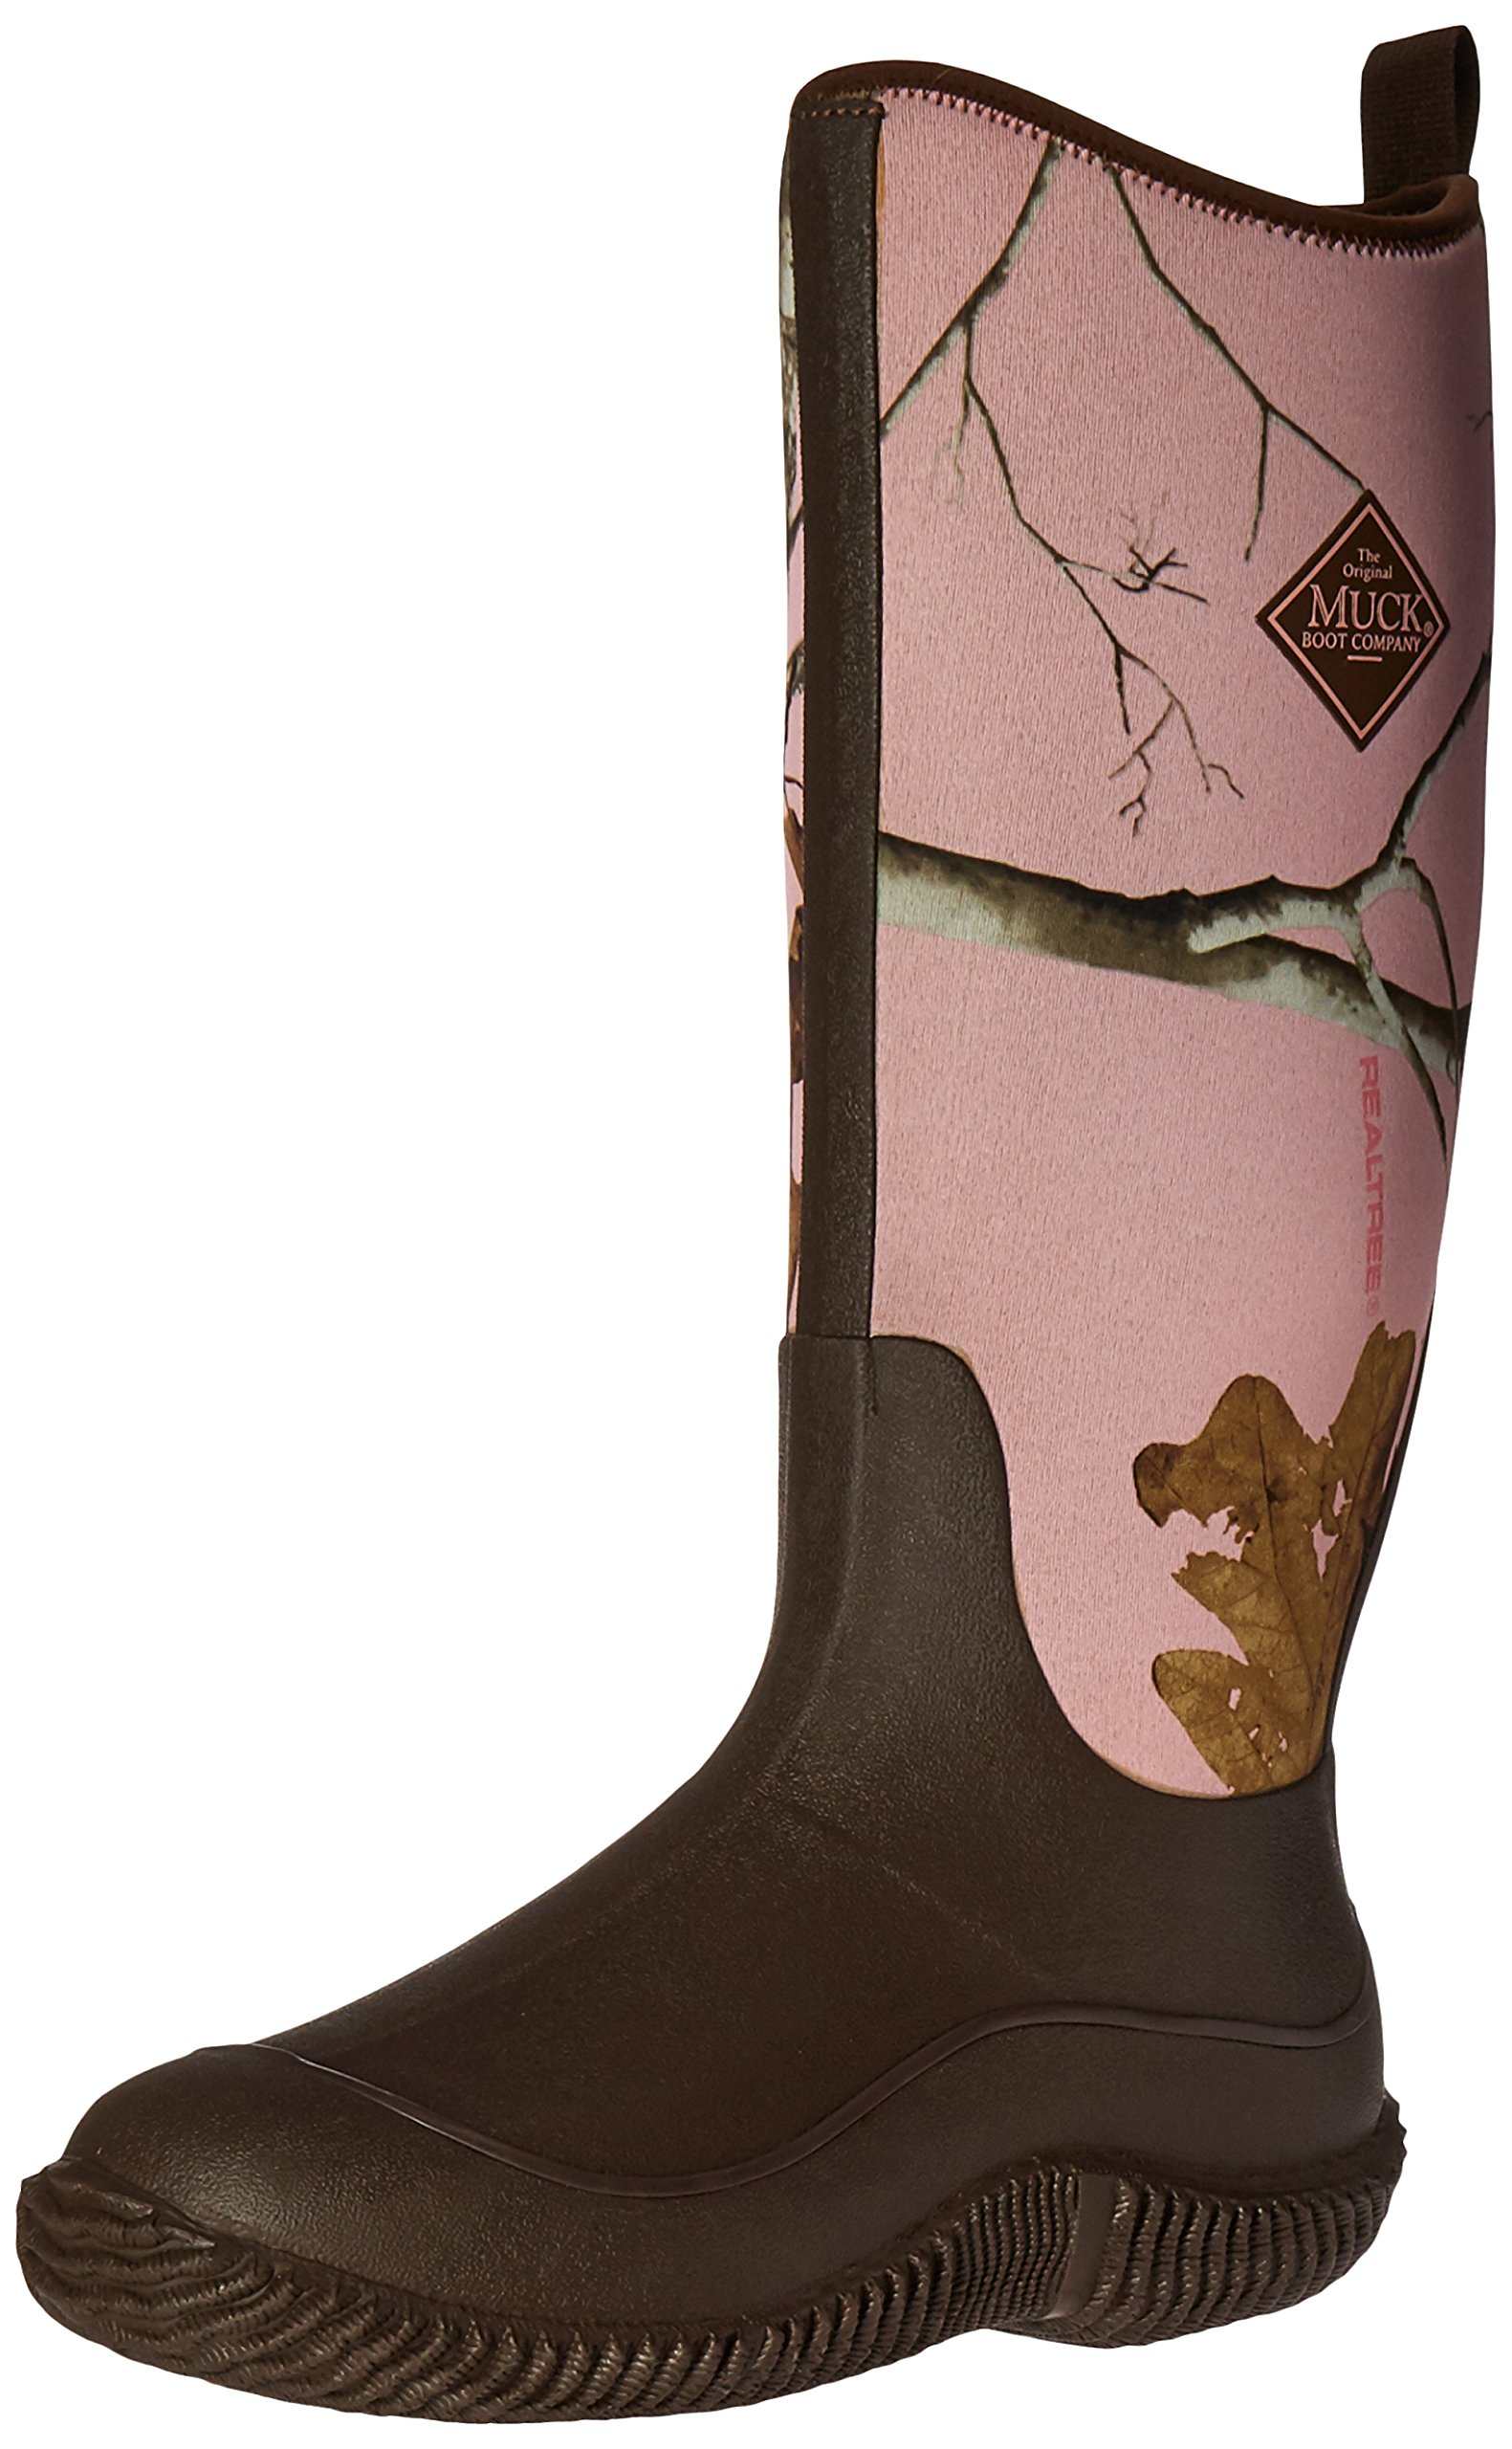 Muck Boot Women's Hale Snow Boot, Brown/Pink Realtree Apc, 9 M US